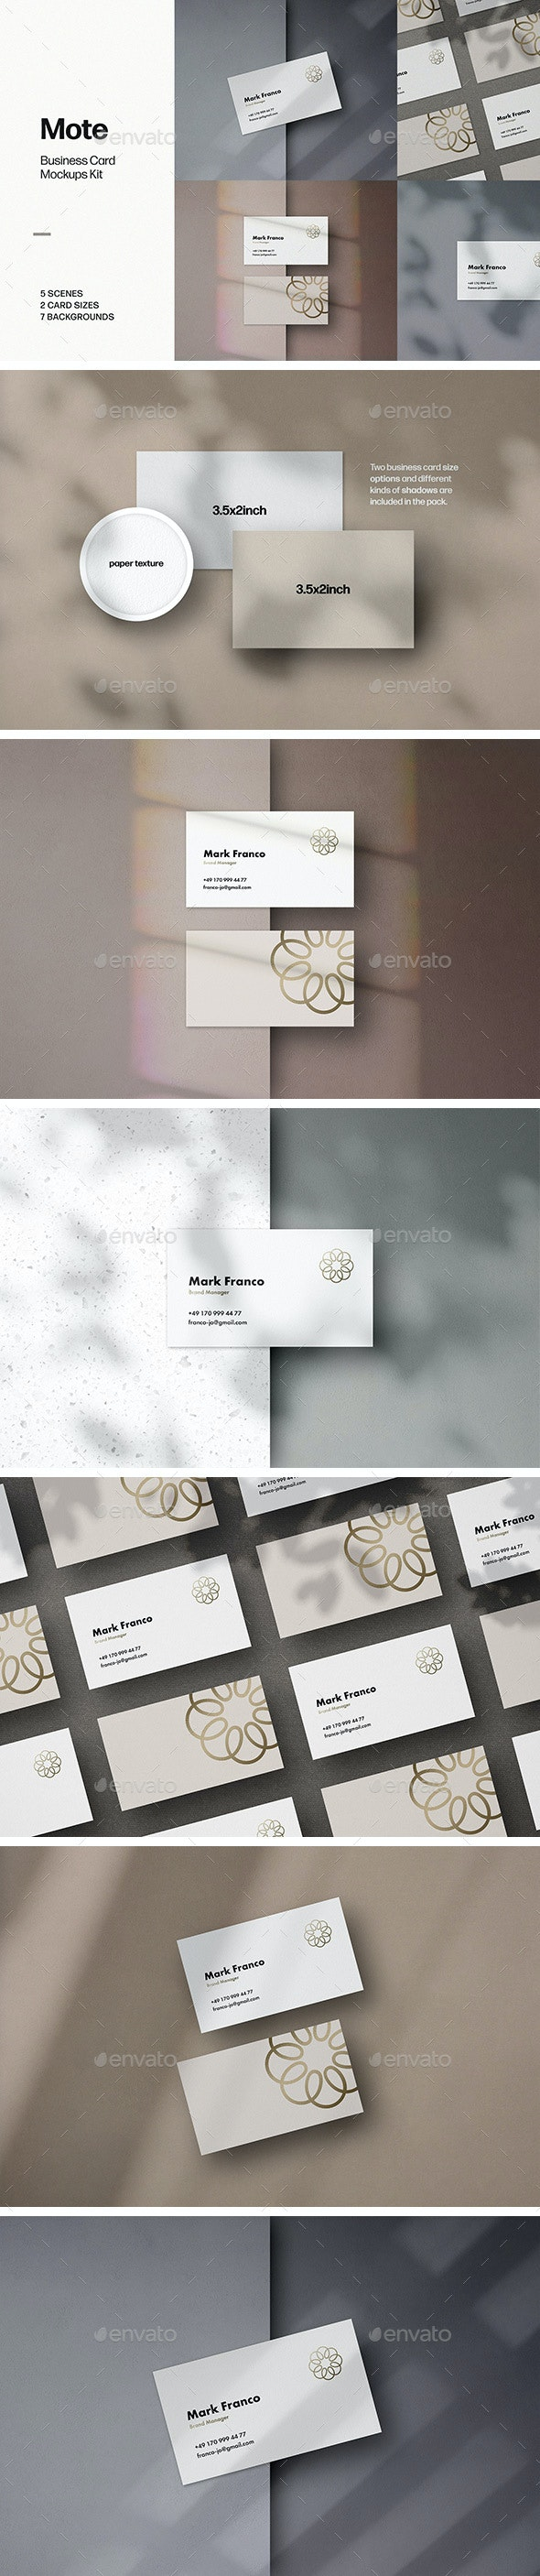 Mote Business Card Mockups - Business Cards Print